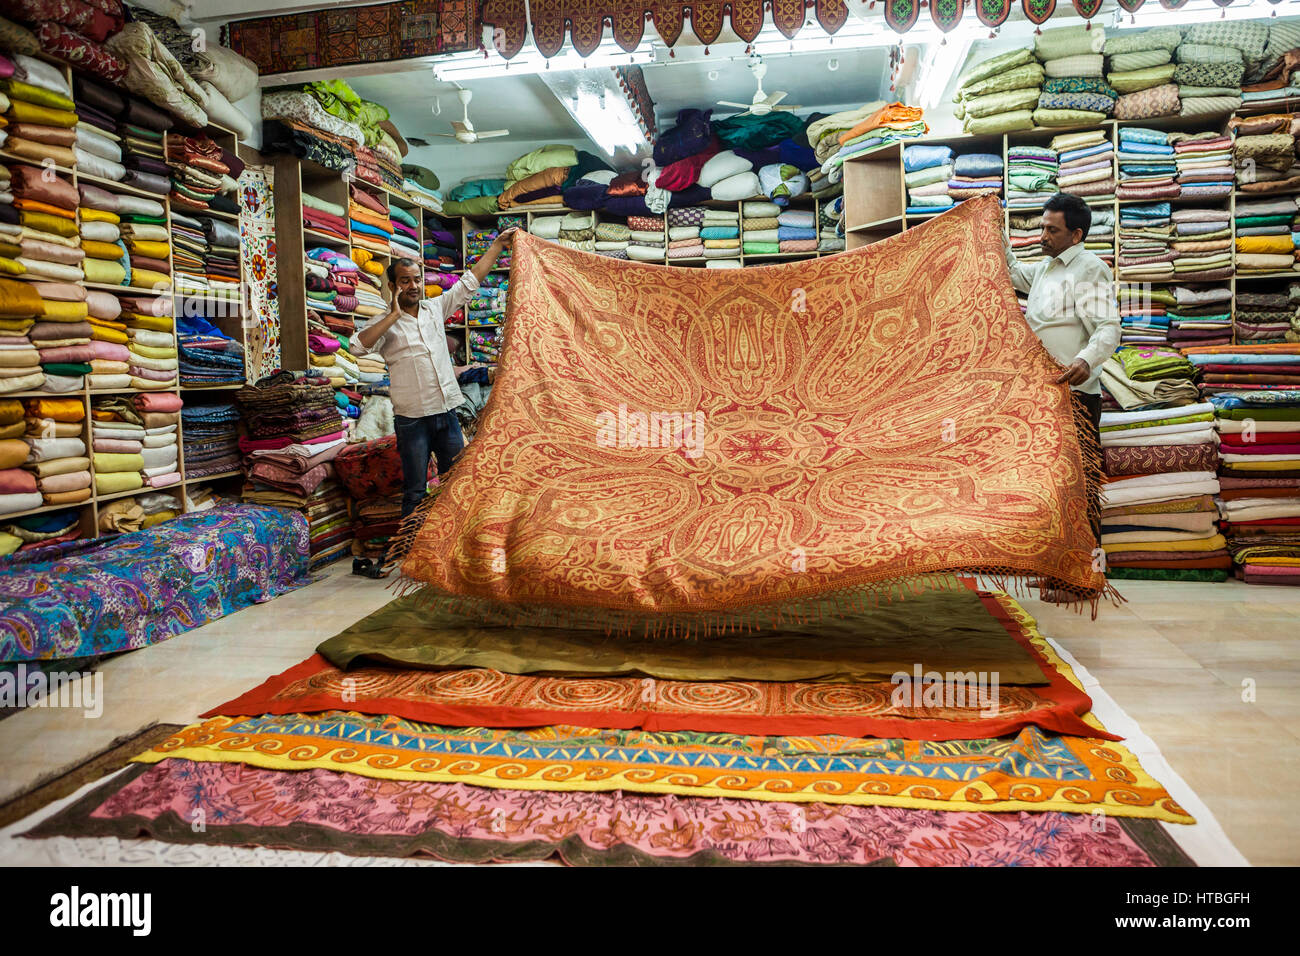 Two men in a showroom laying out different textiles / blankets for customers to see and buy, Jodhpur, Rajasthan, - Stock Image